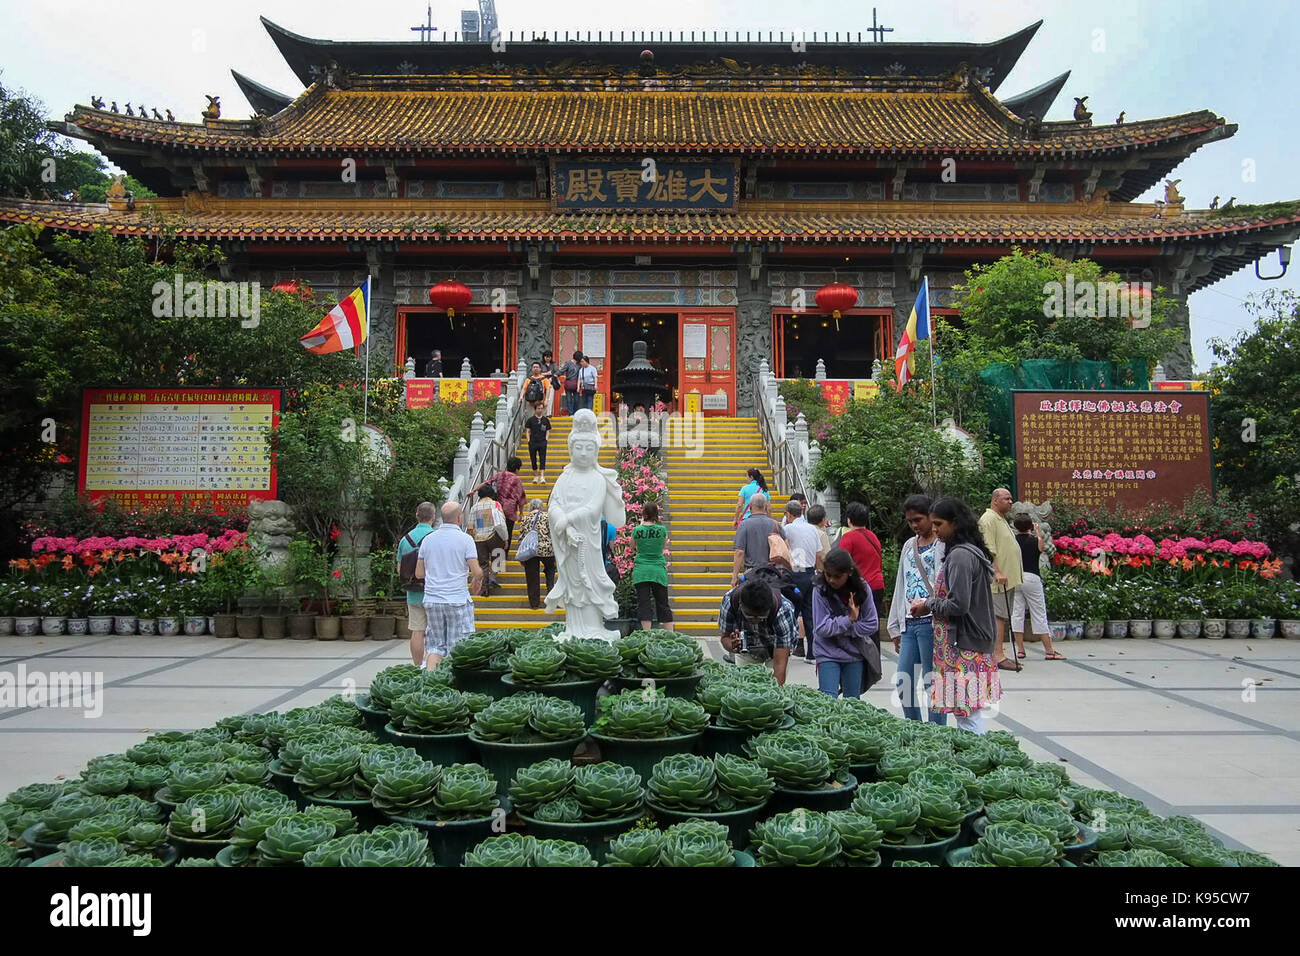 Tian Tan Buddha The Big Buddha and Po Lin Monastery. Po Lin monastery. © Jayne Russell/Alamy Stock Photo - Stock Image